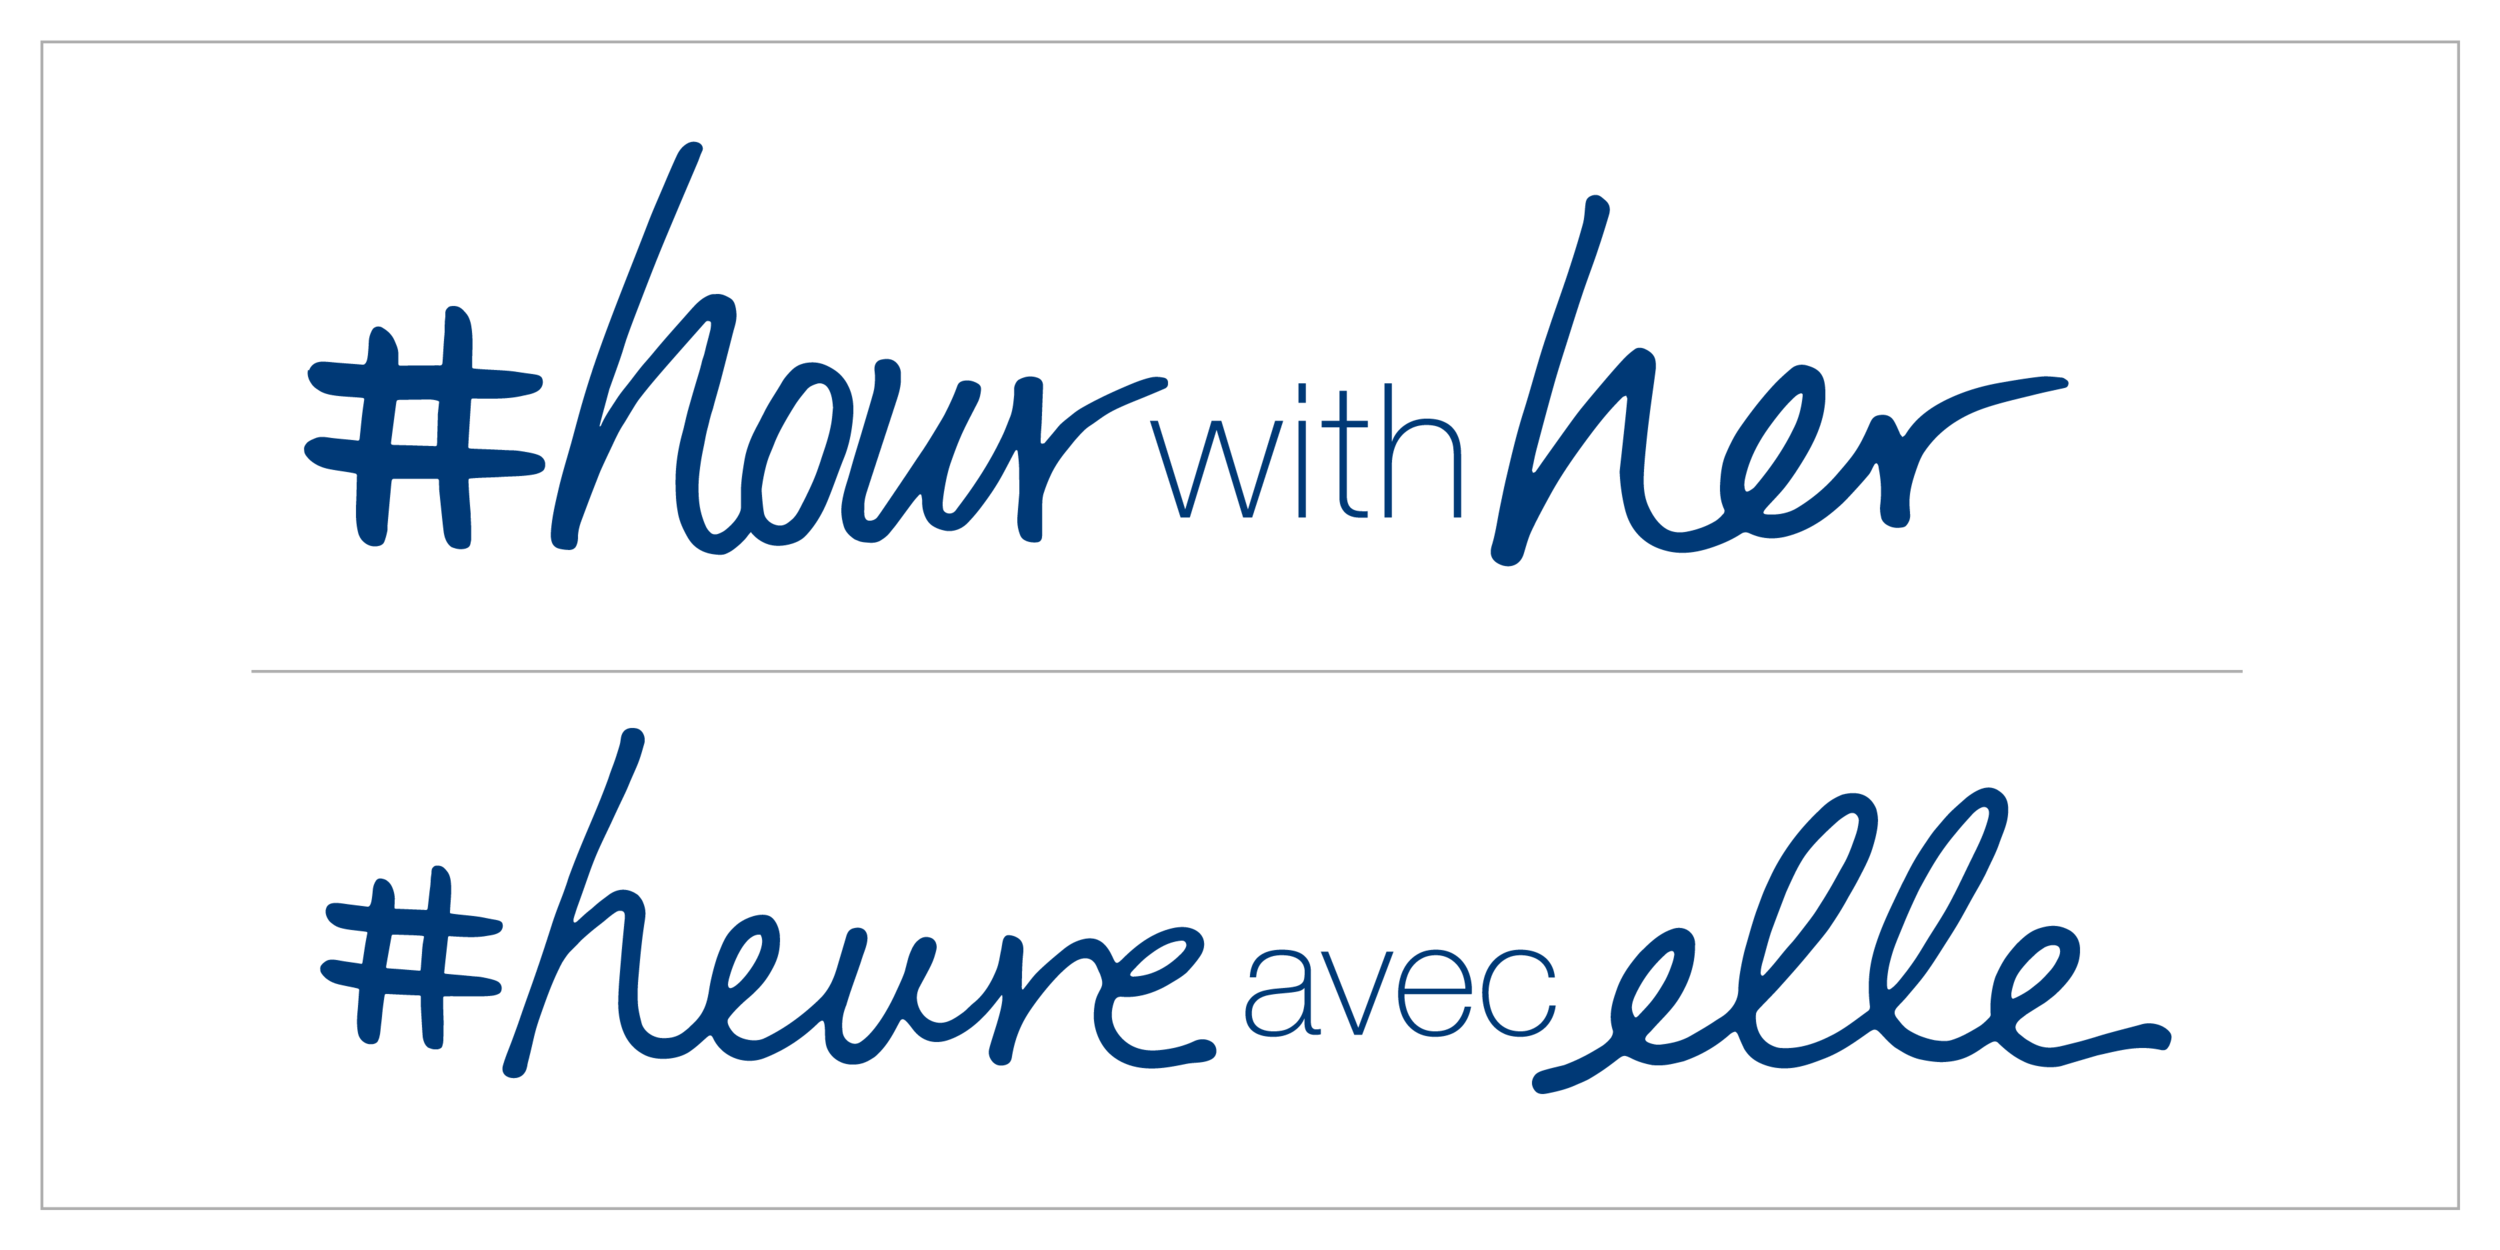 Logo Creation - As the sibling to Real Beauty Productions, HourWithHer had to have a logo that felt similar but as unique as its mission. Custom handwriting pairs with Helvetica Neue and is versatile in order to reach a variety of markets.